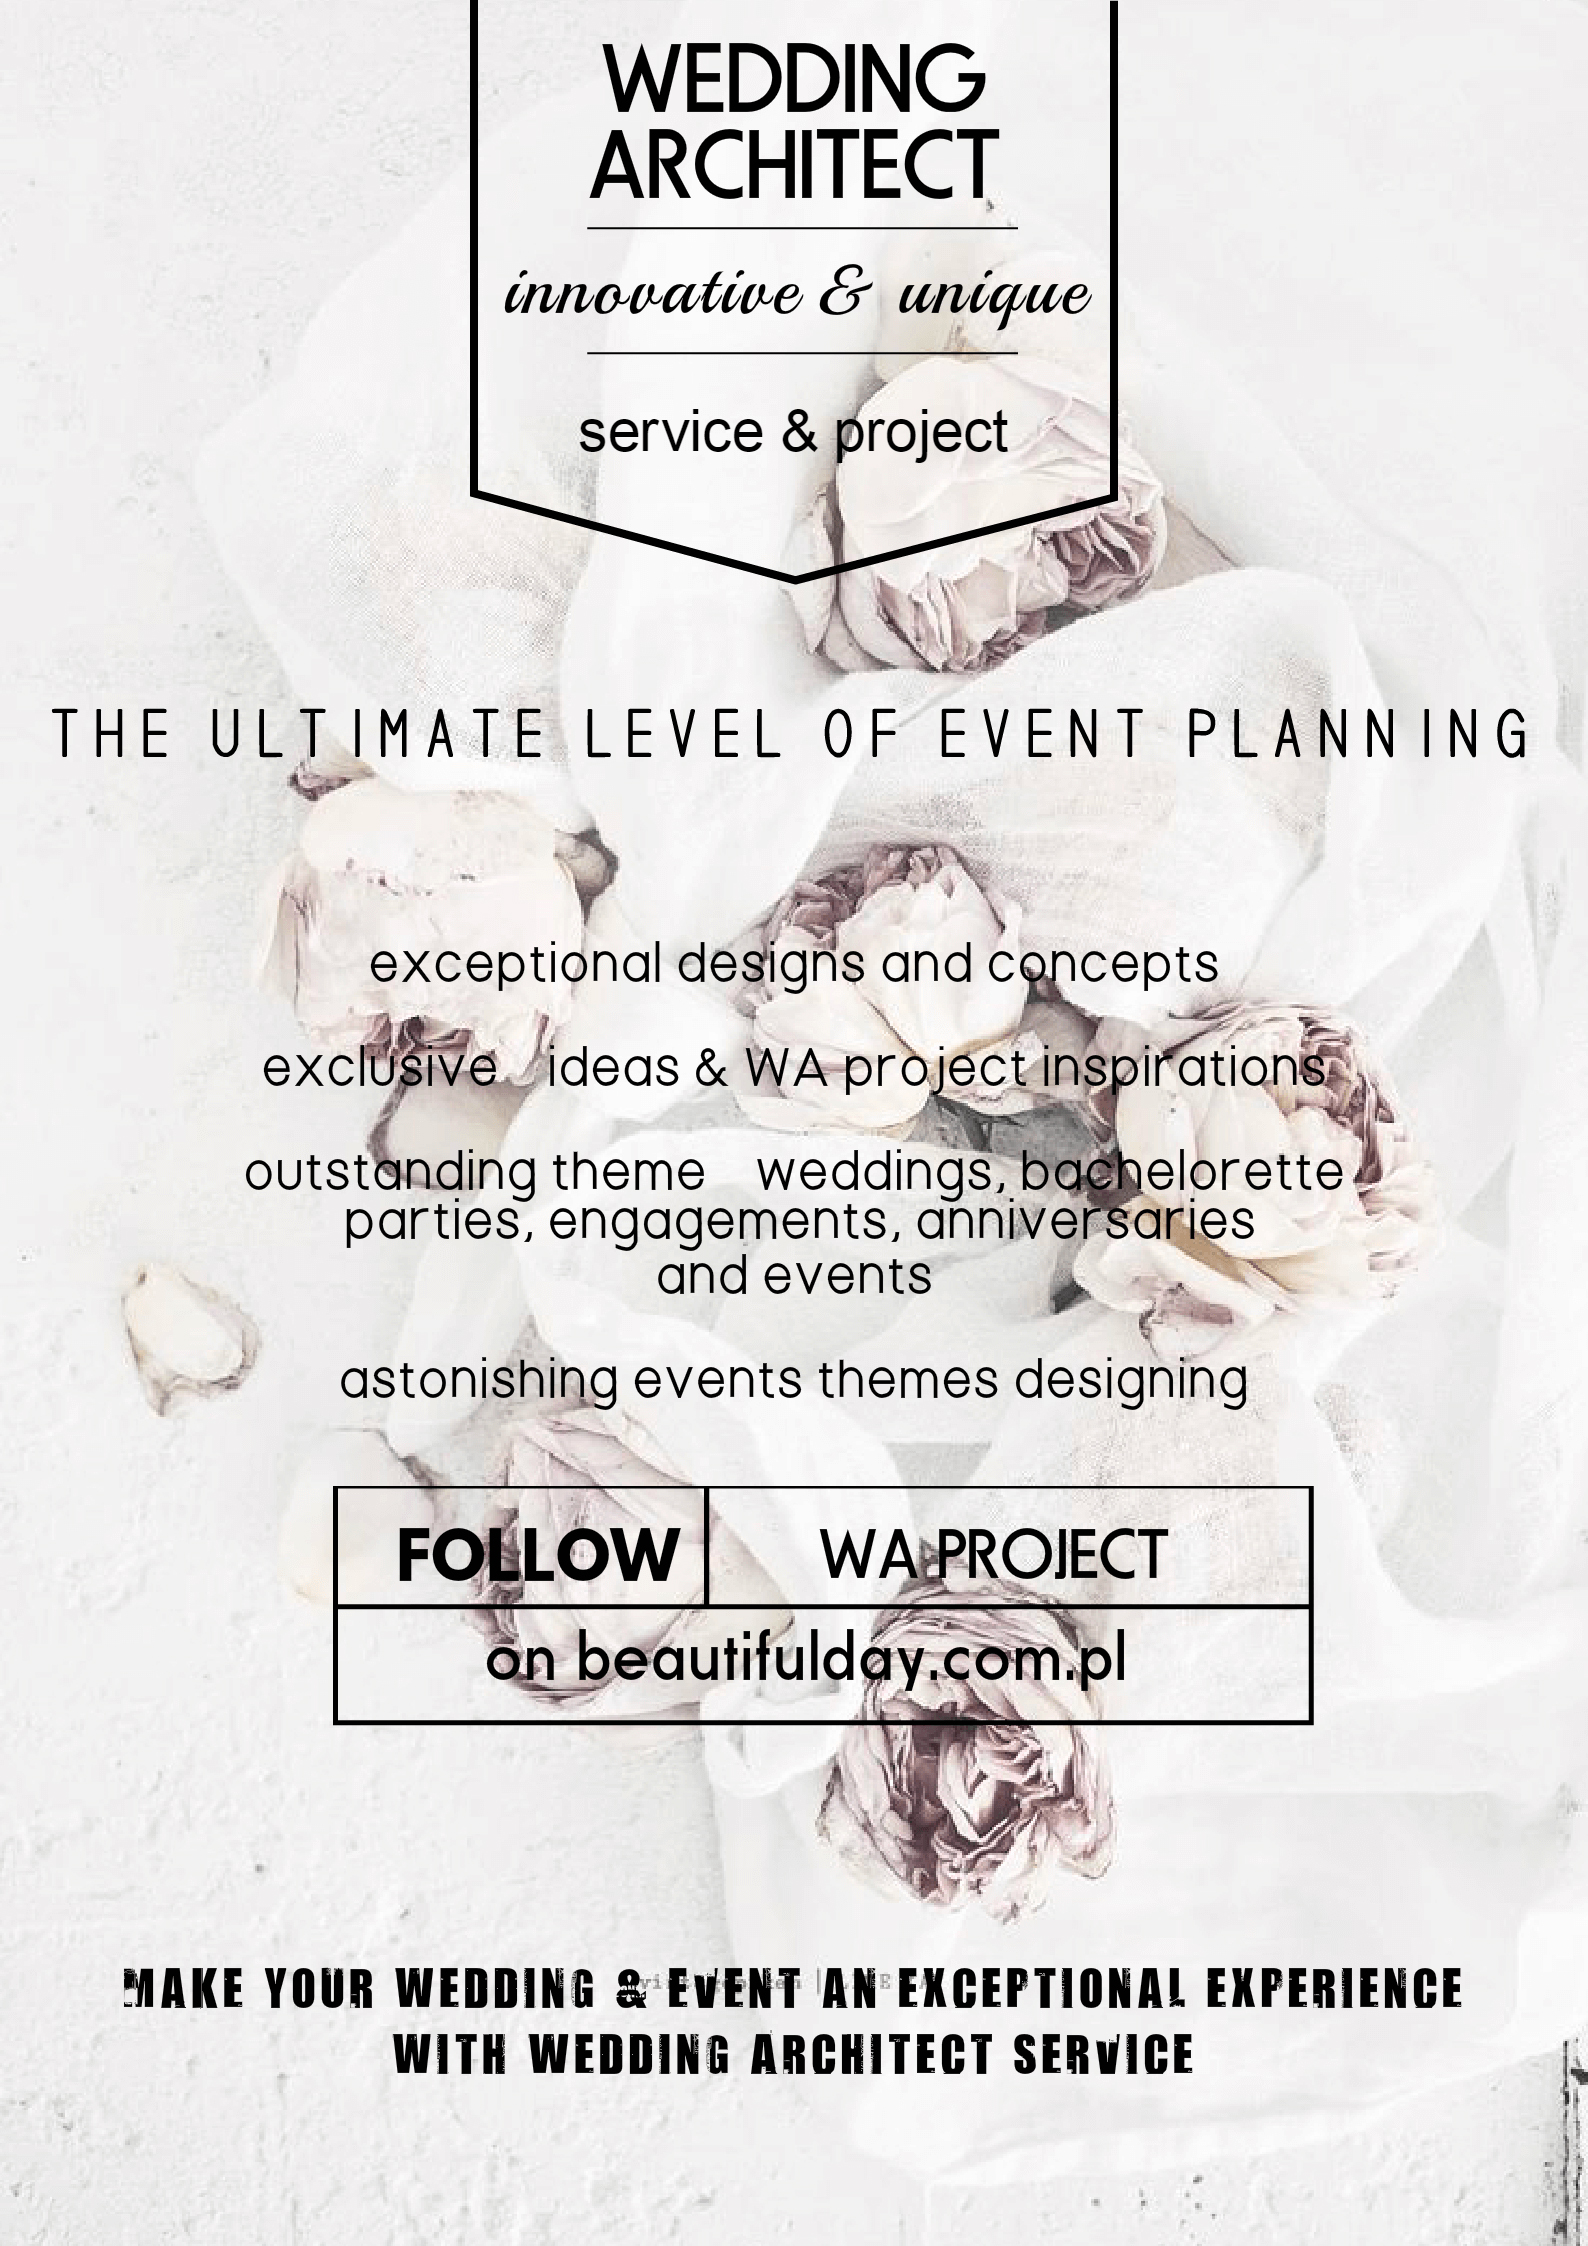 Wedding Architect - the ultimate level of event planning